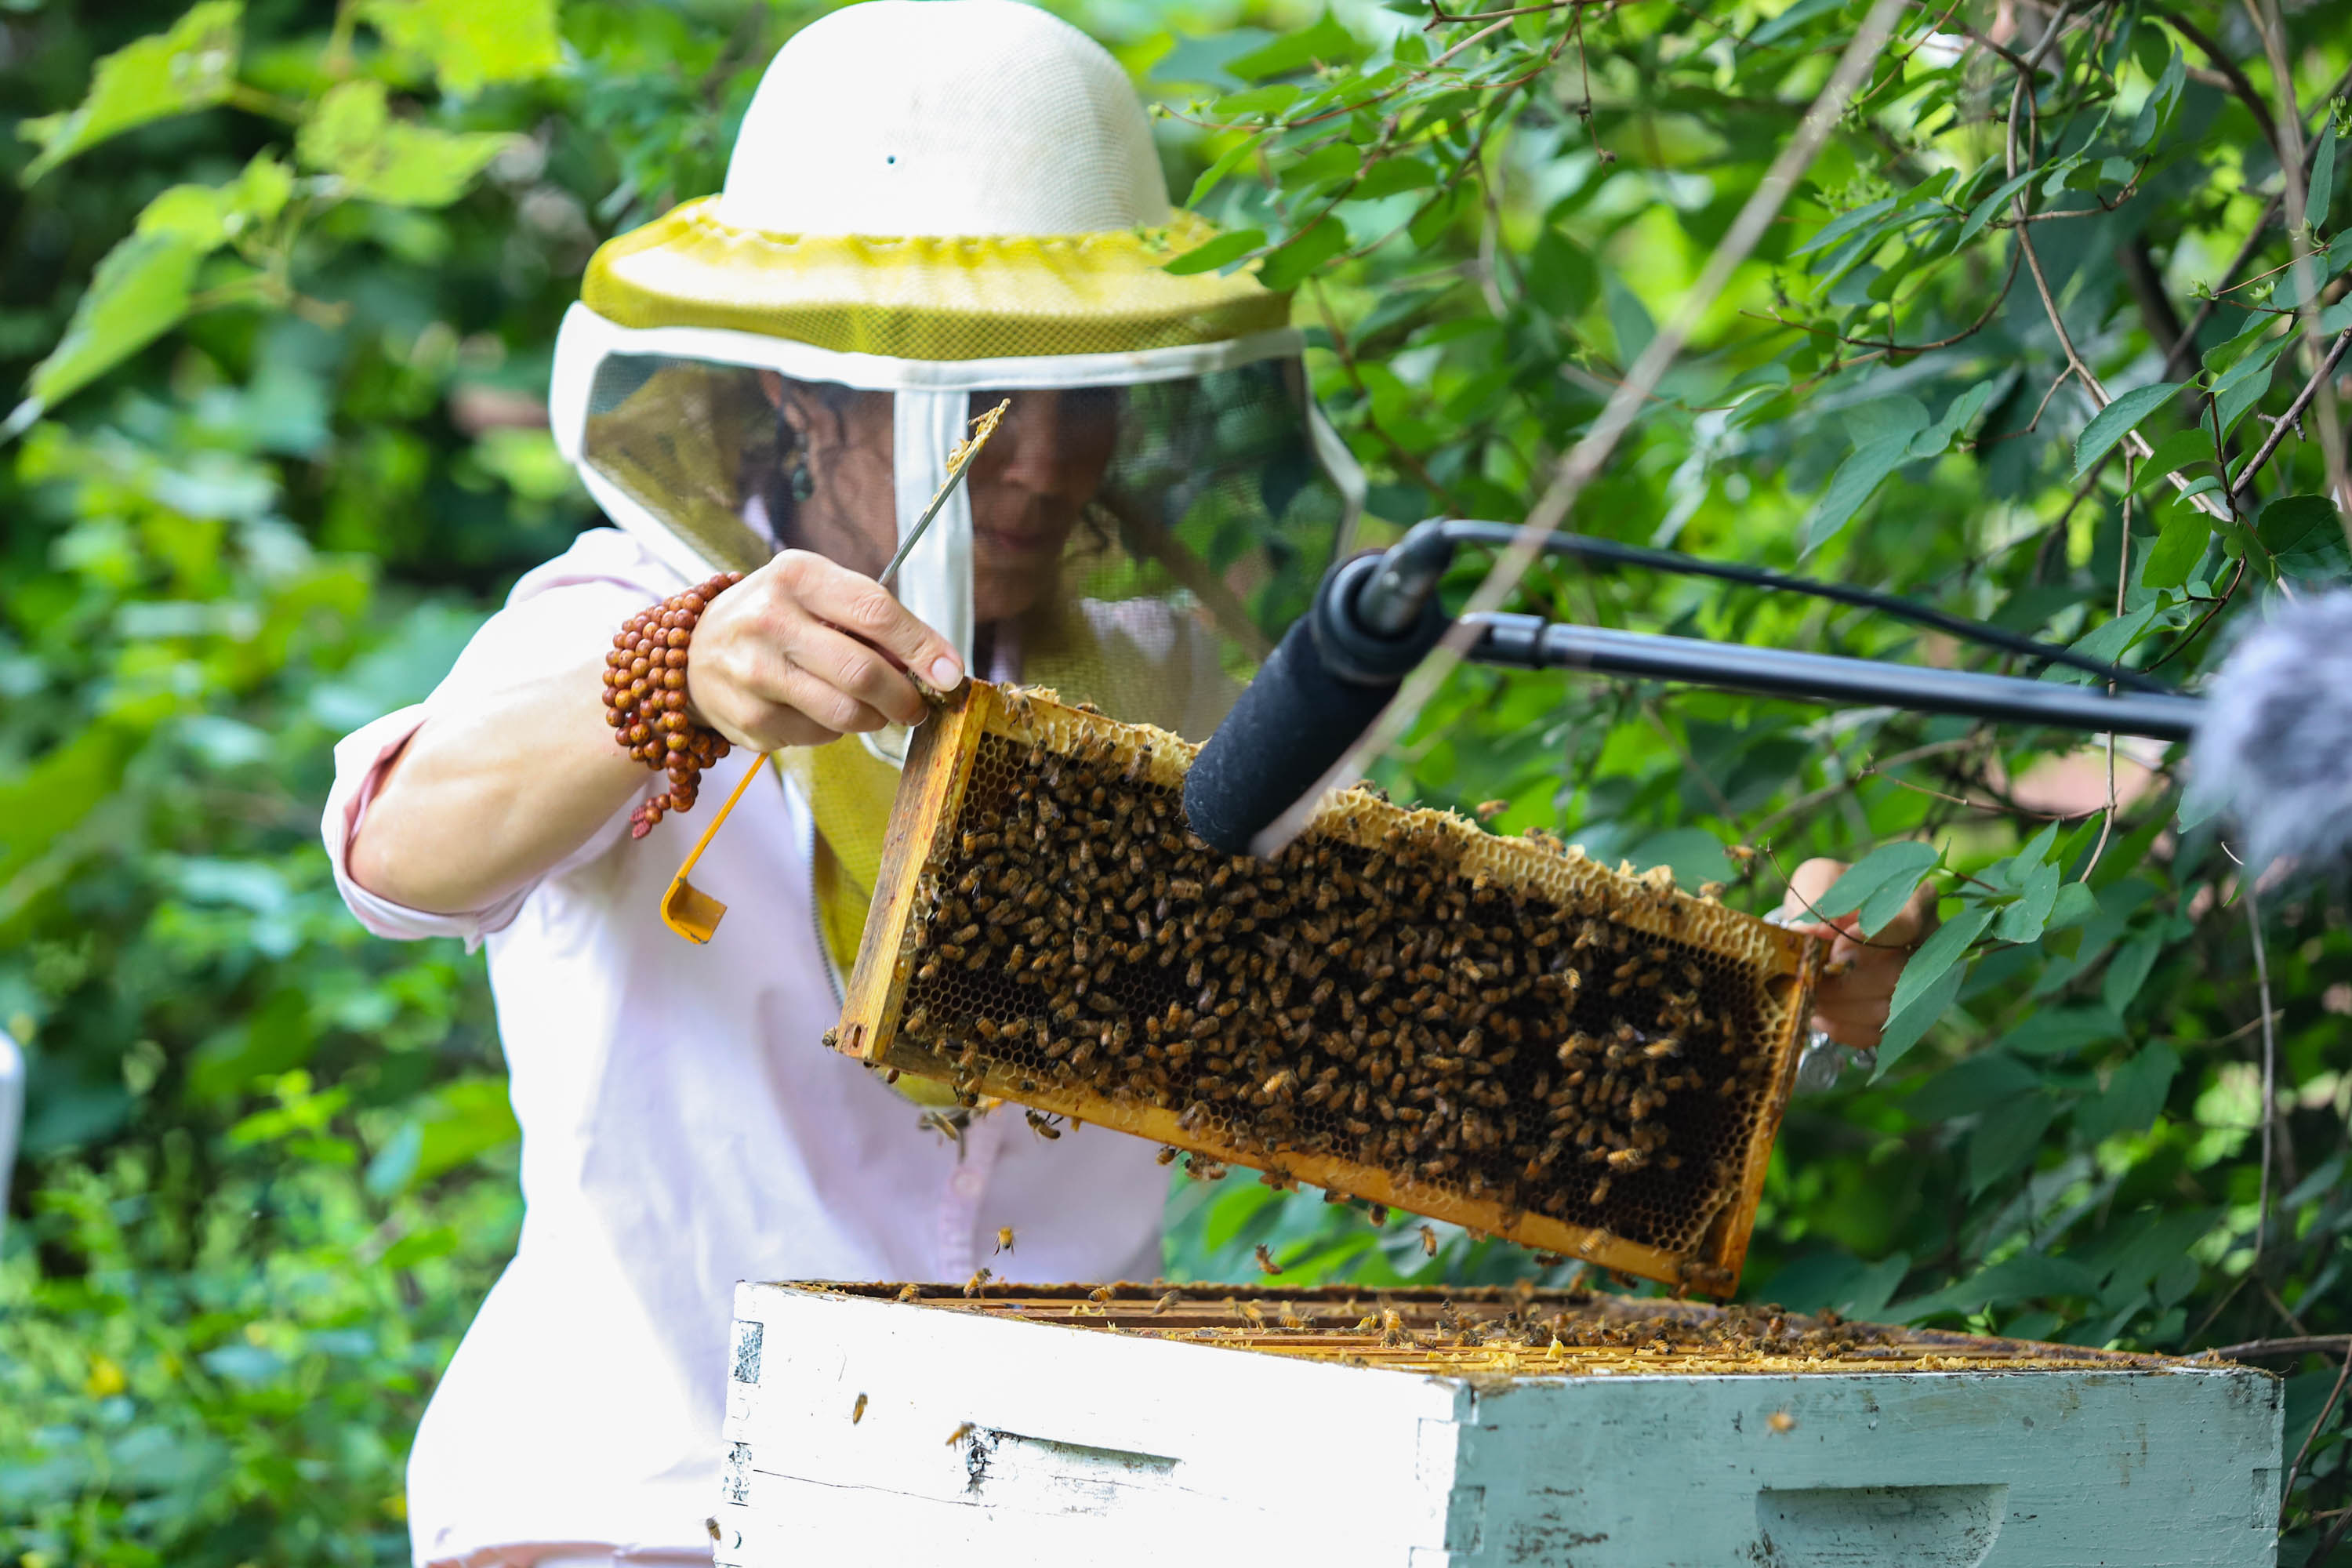 Heather holds up a single frame of the hive. While she could harvest more, she only takes the honey from 4-5 frames at a time, leaving the rest for the bees. That works out to around 25 pounds of honey. <em>Shannon Henry Kleiber (TTBOOK)</em>